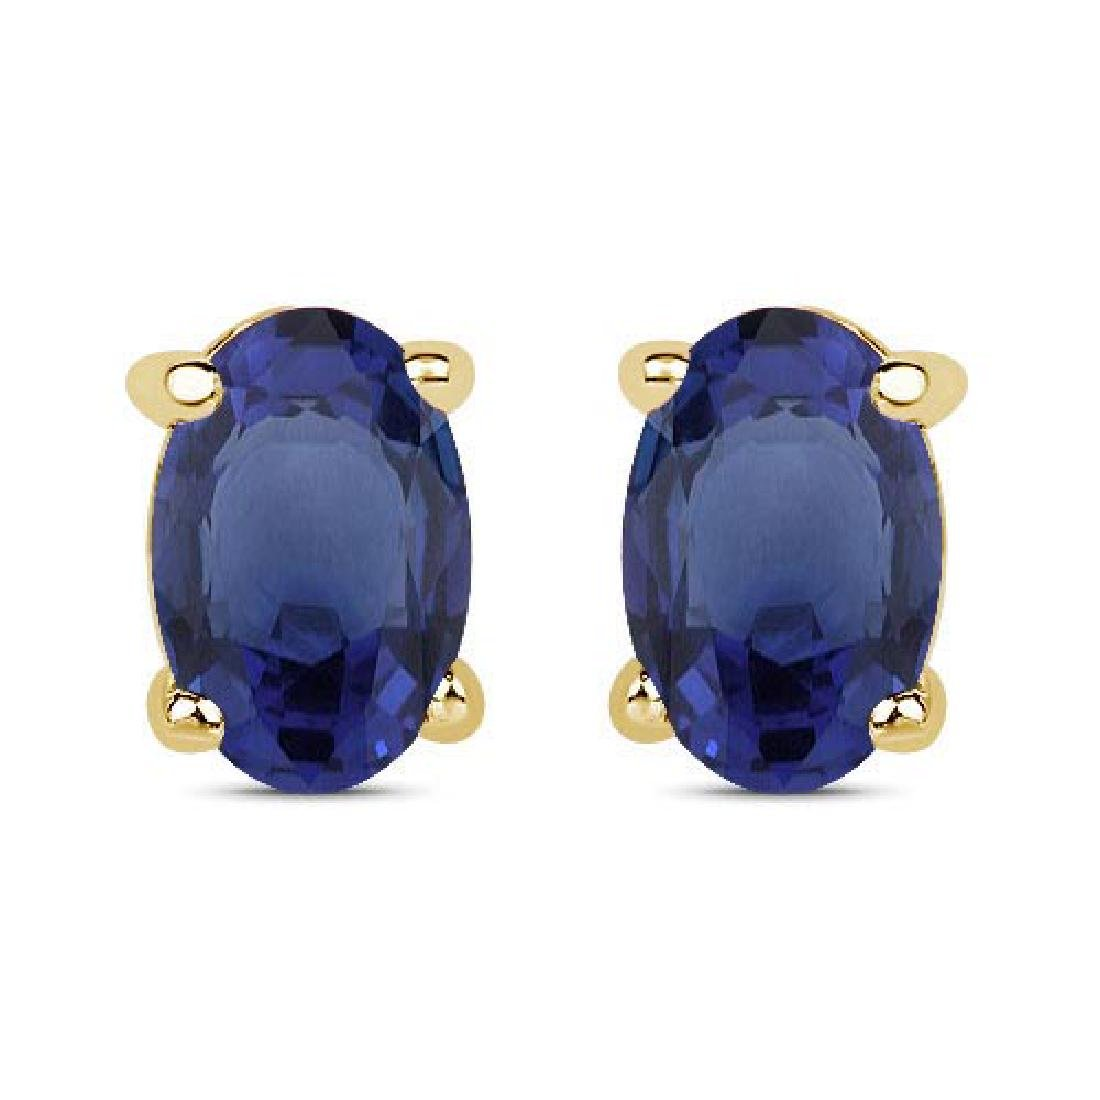 Certified 4.50 CTW Genuine Blue Sapphire And 14K Yellow